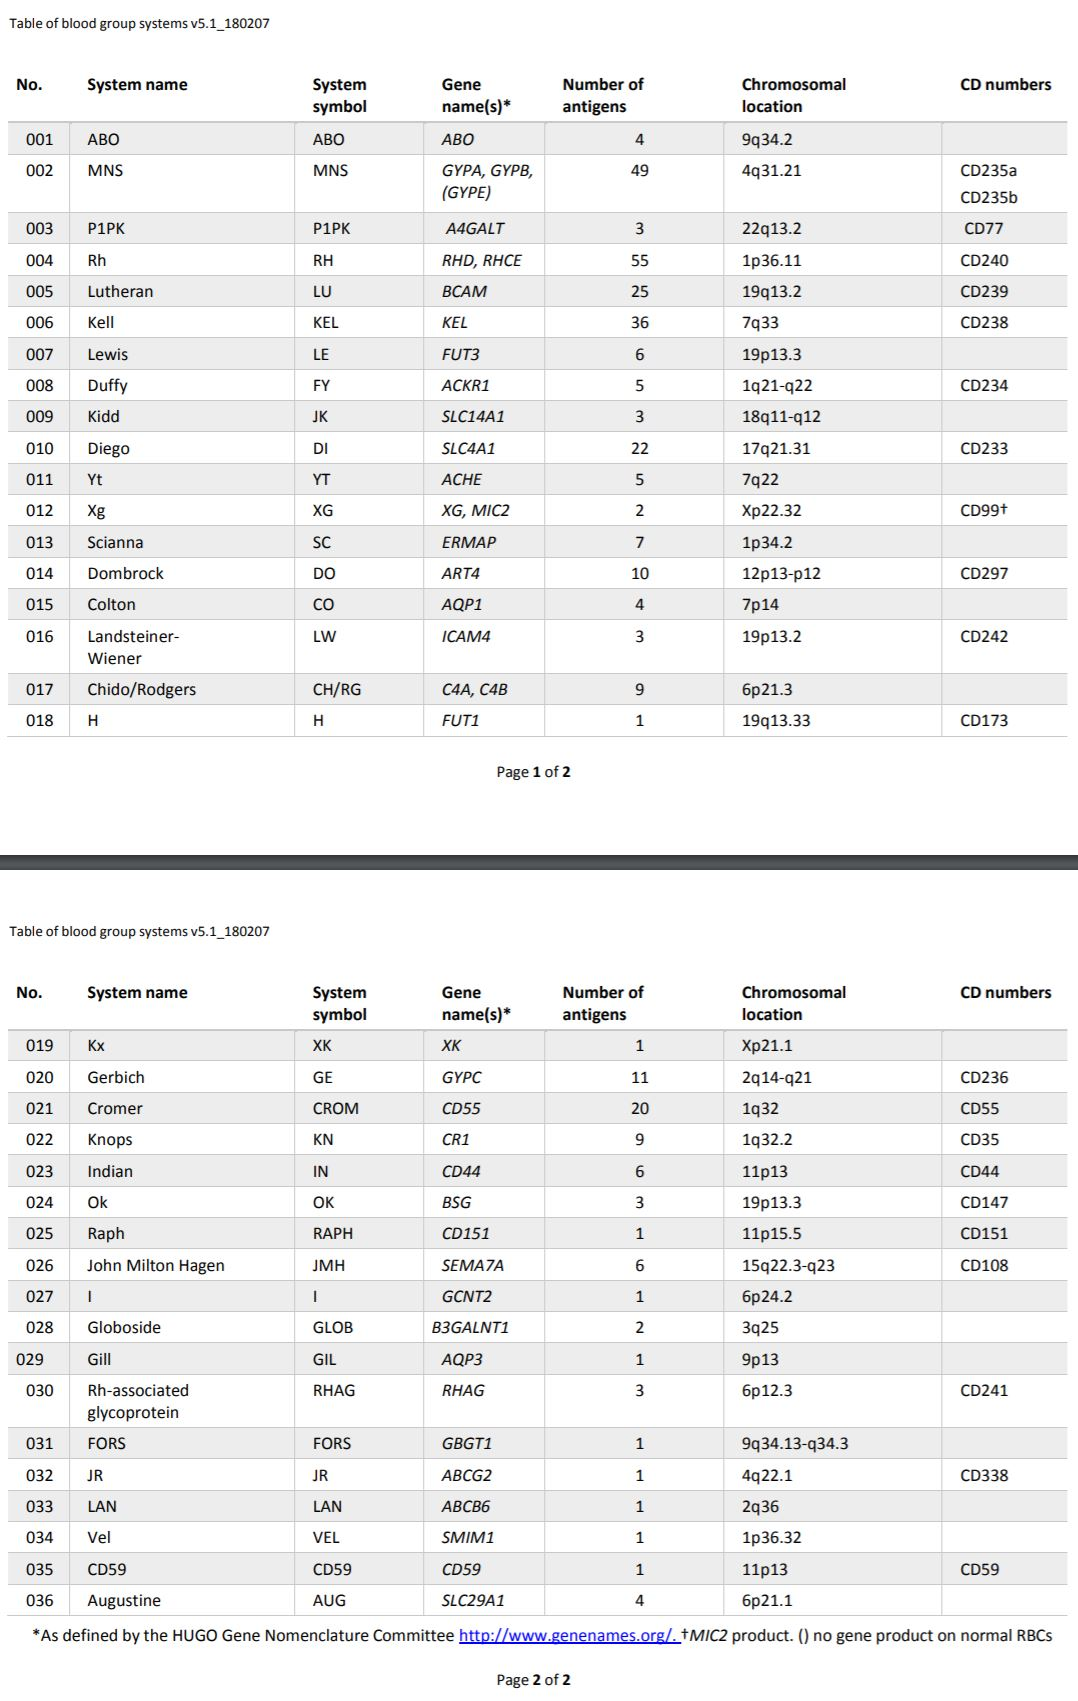 Table of blood group systems v5.1 180207-2.JPG